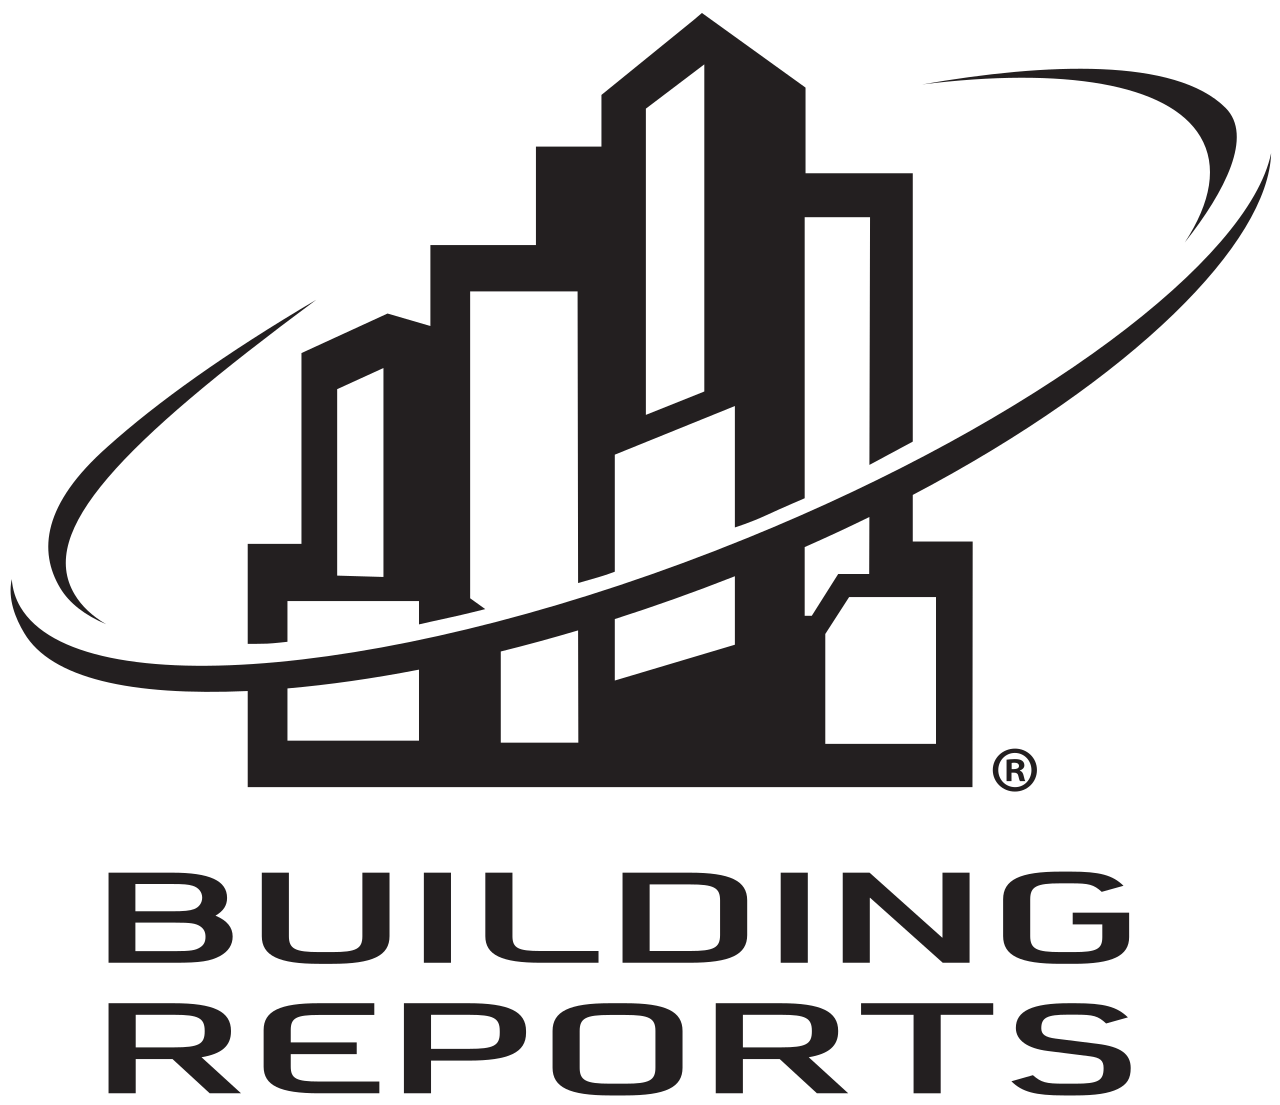 BuildingReports.com, Inc.